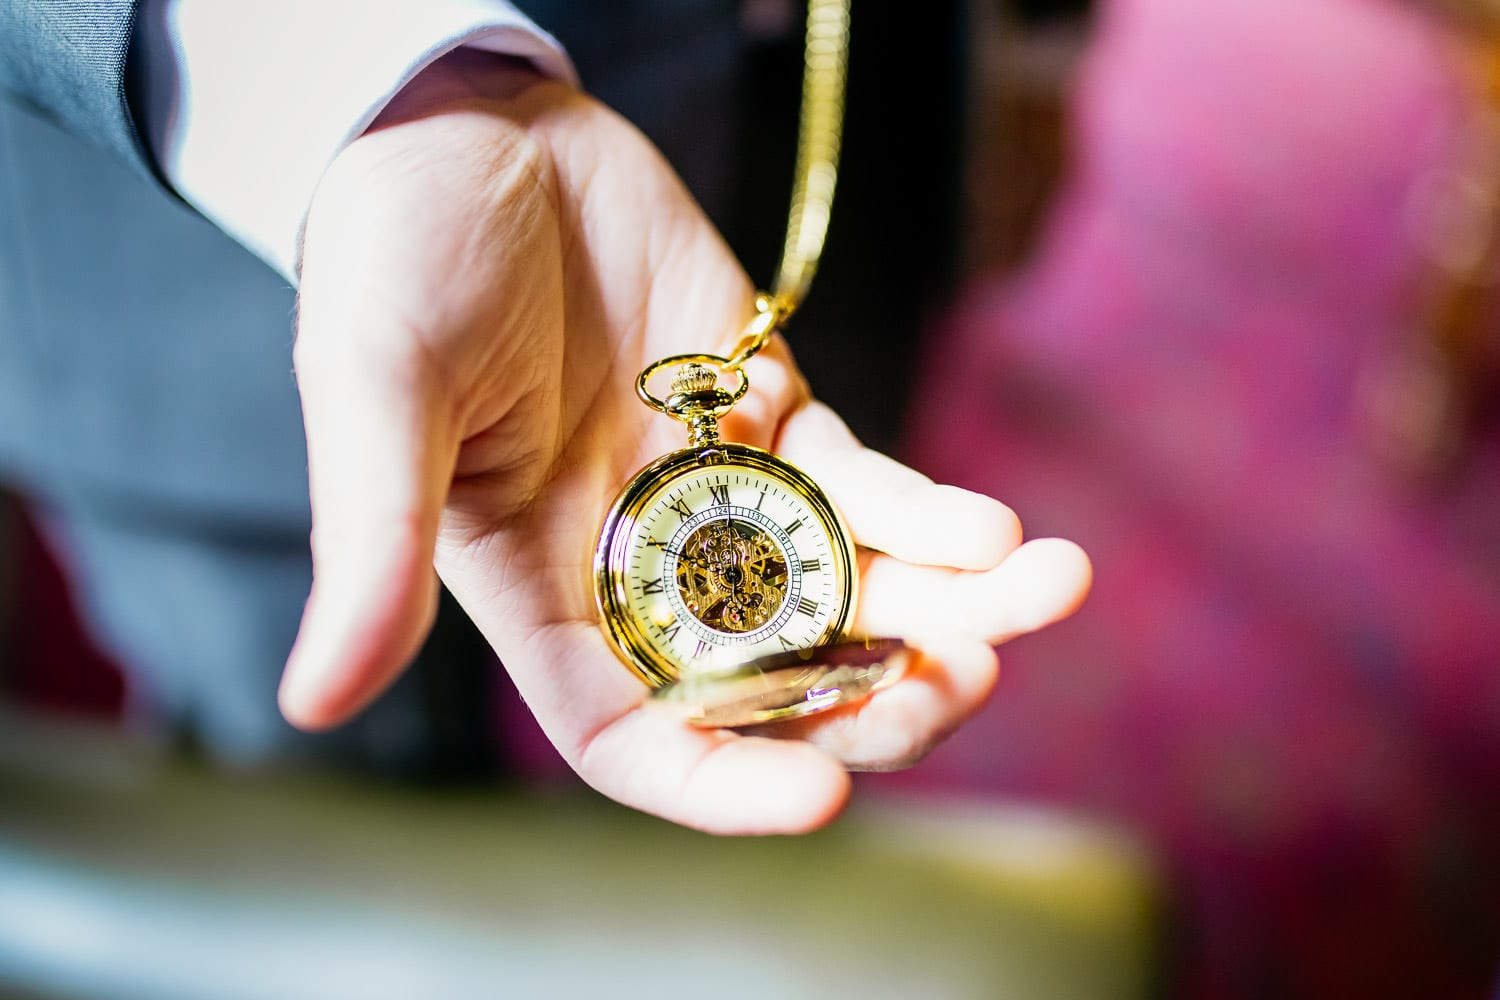 groom holds a pocket watch in his hand